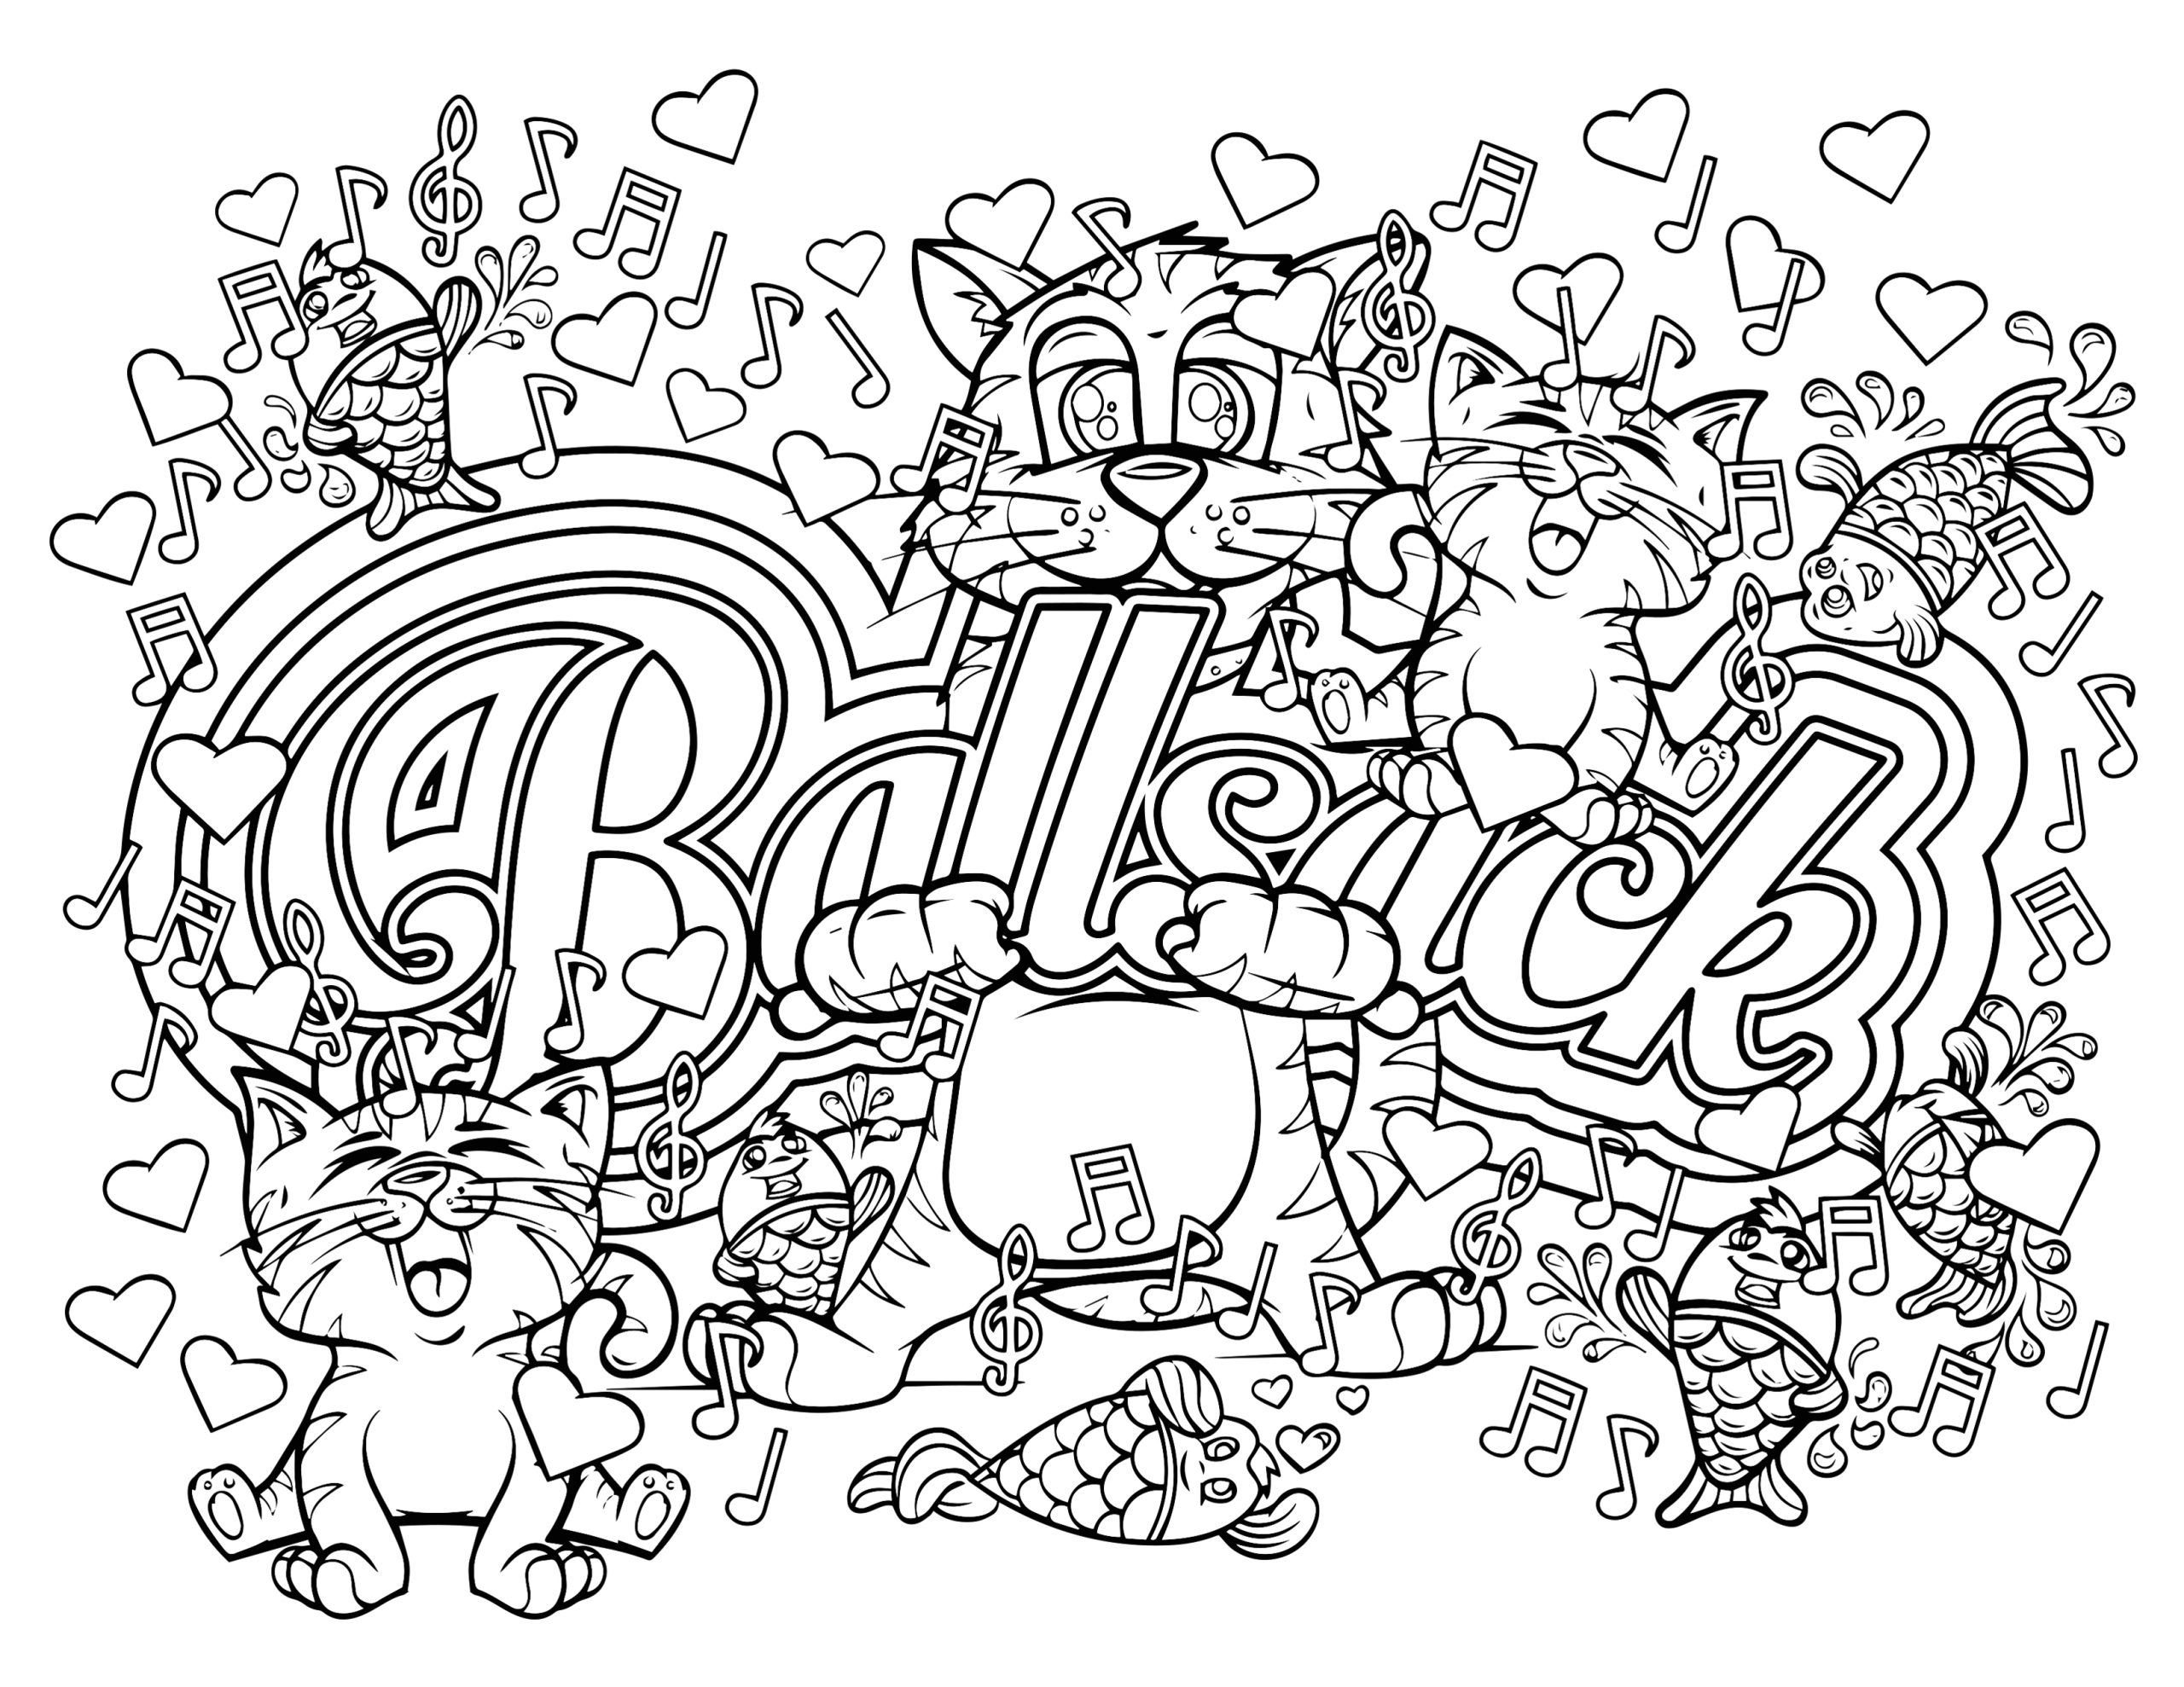 Free Printable Coloring Pages for Adults Swear Words Swear Word Coloring Pages Printable at Getcolorings